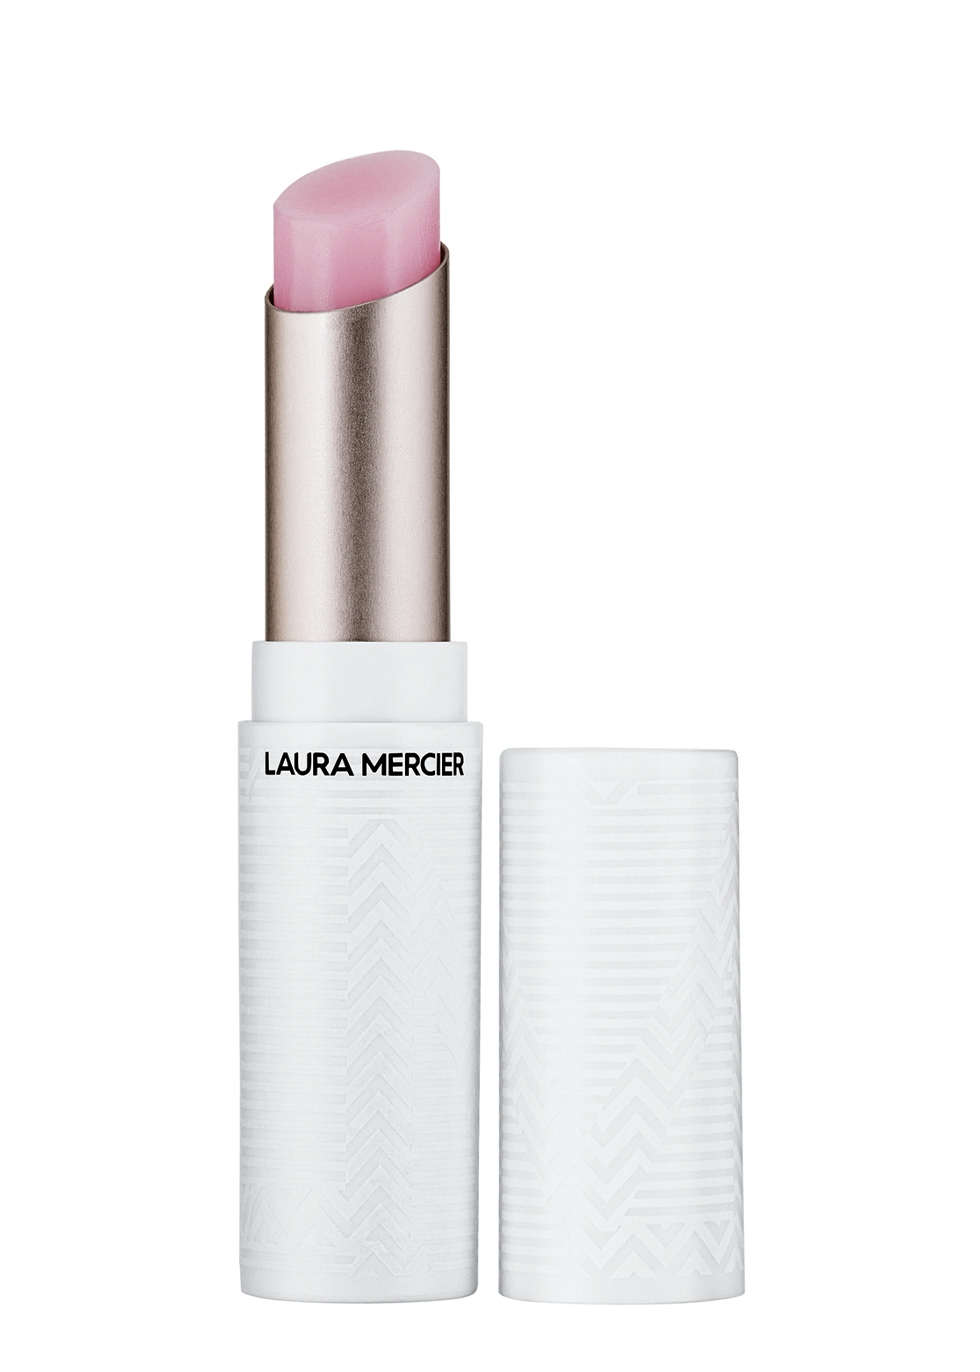 Get The Laura Mercier Lip Parfait Creamy Colour Balm From Harrods Us Now Accuweather Shop